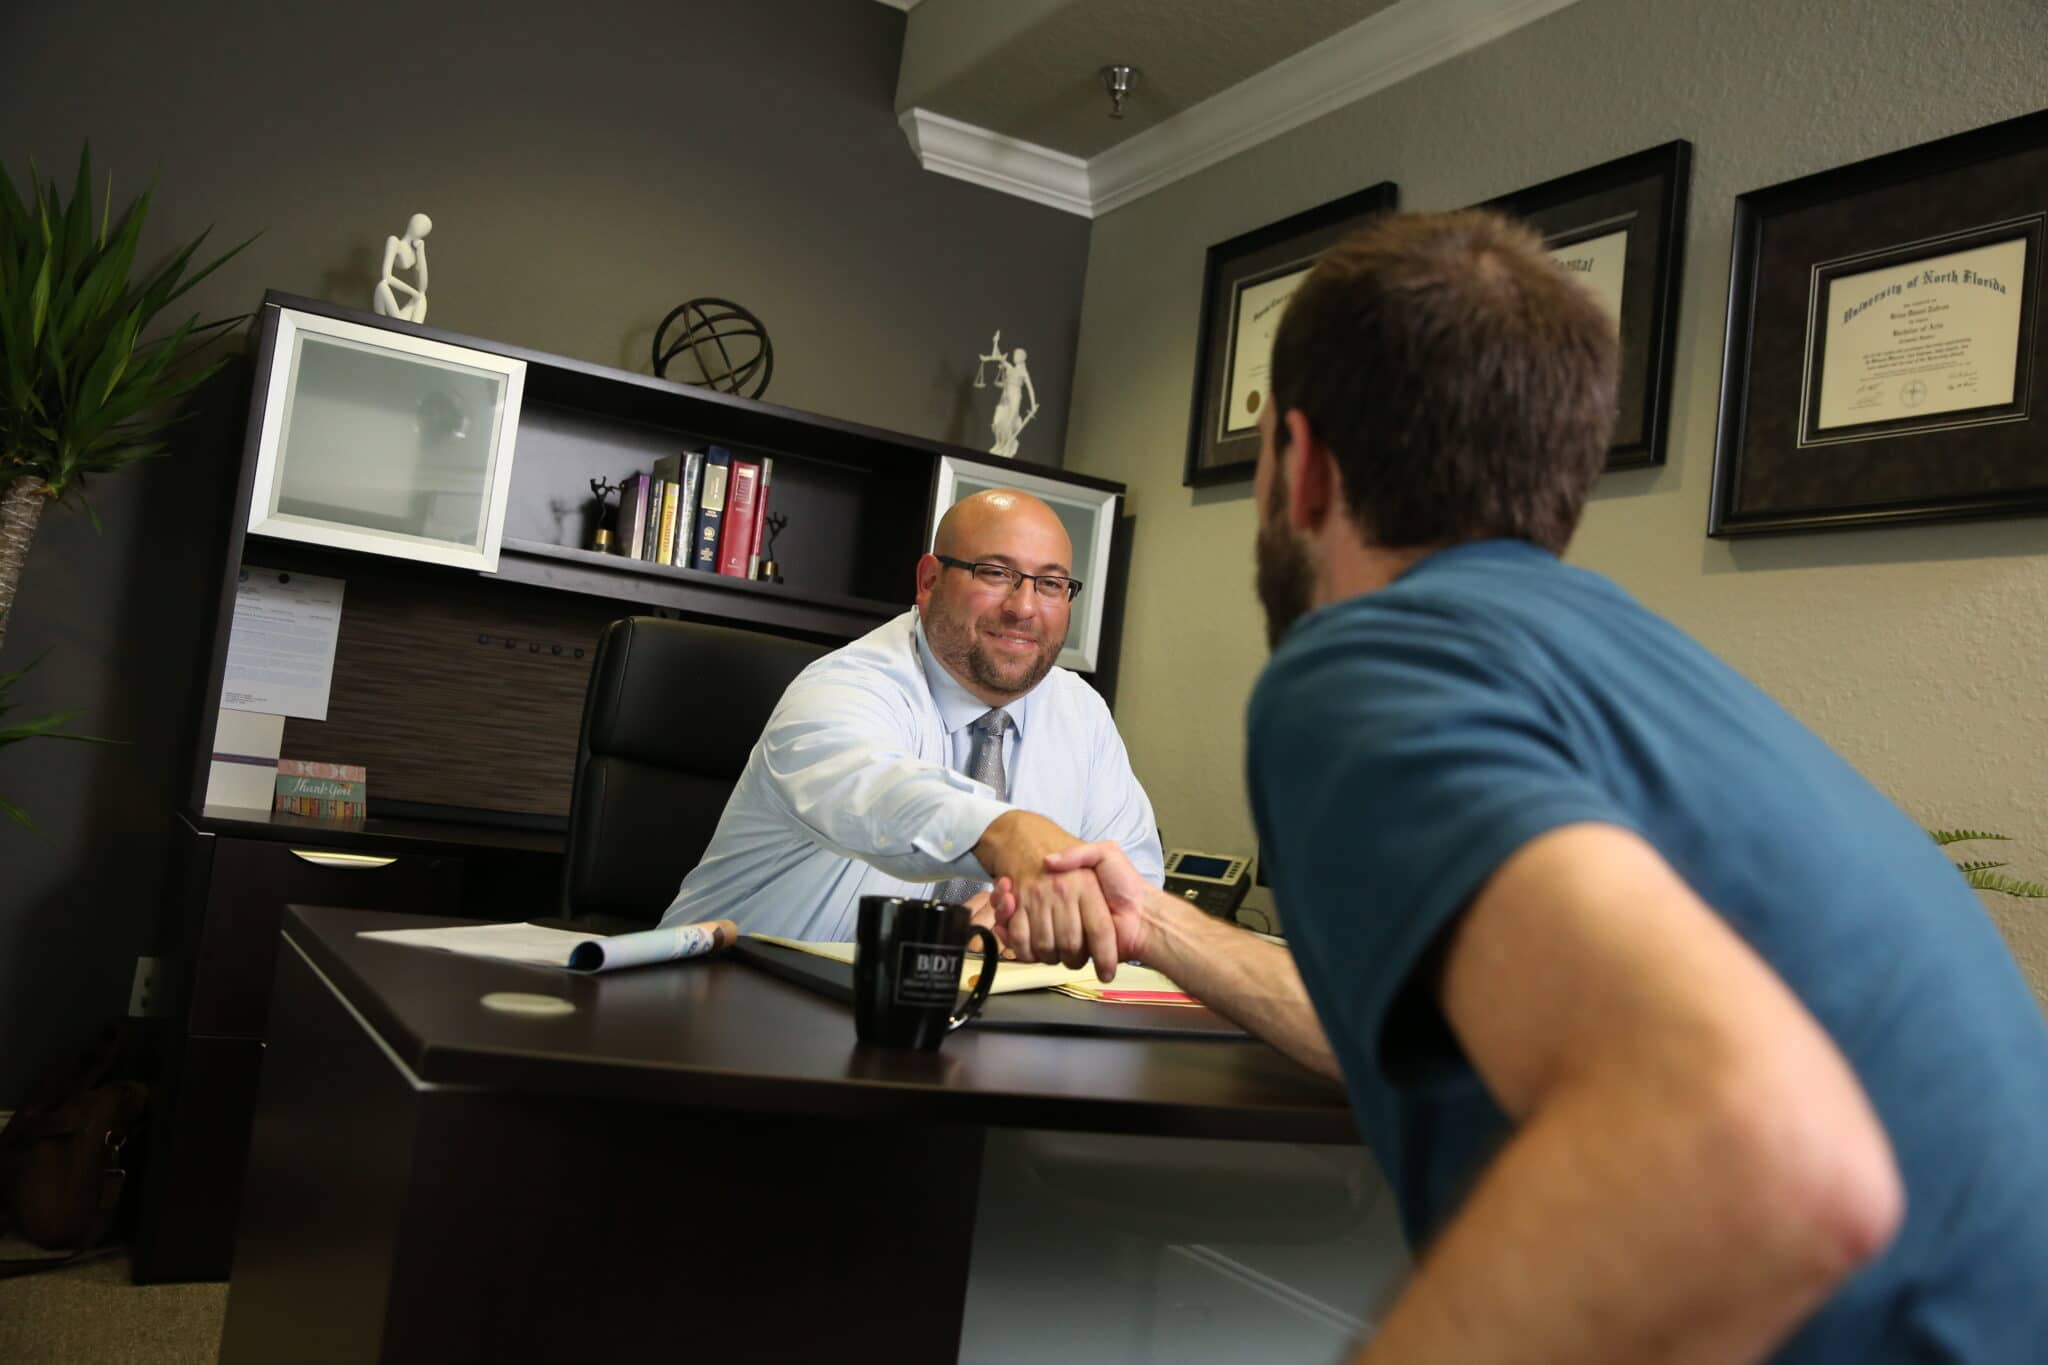 Workers' comp attorney Brian Tadros shaking client's hand